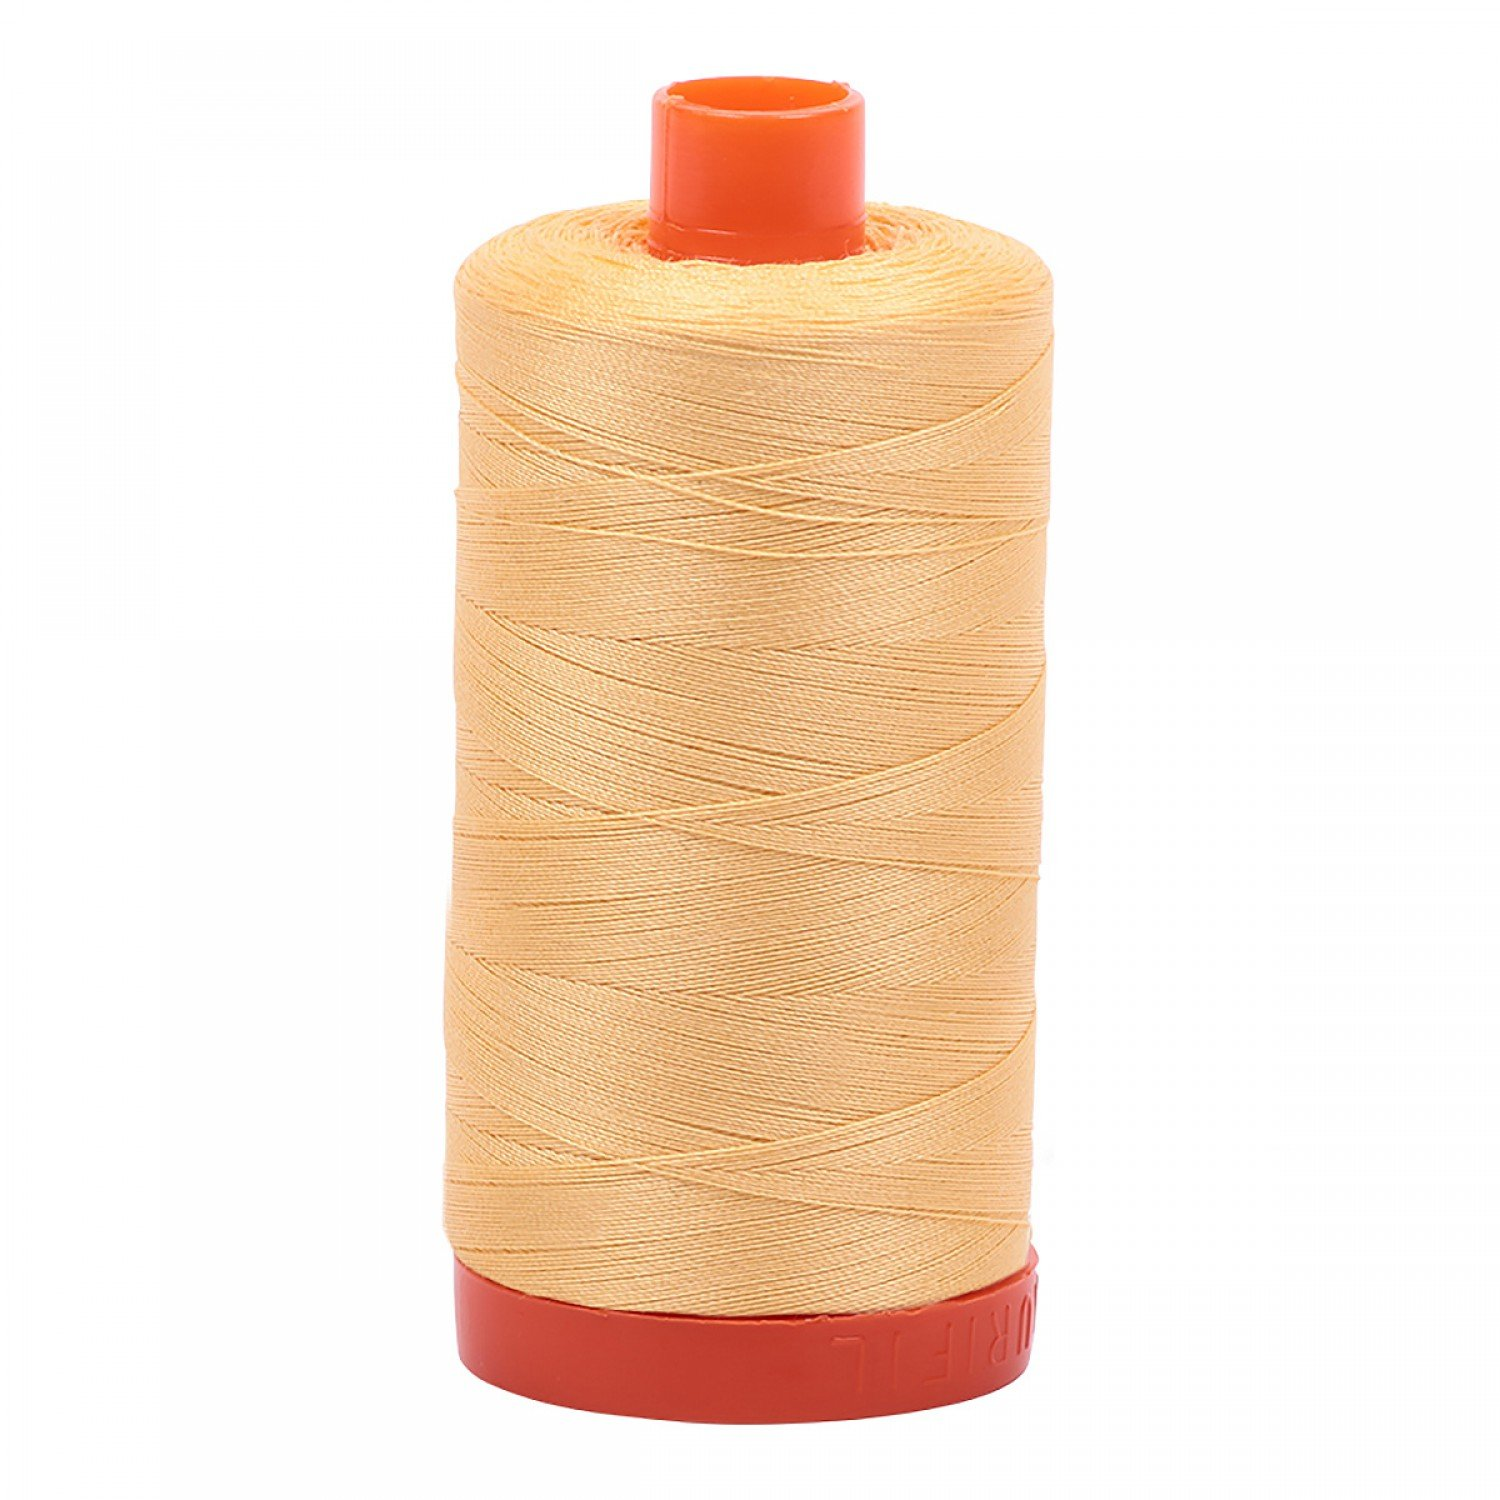 Aurifil 50WT 1422YD - 2130 - Medium Butter